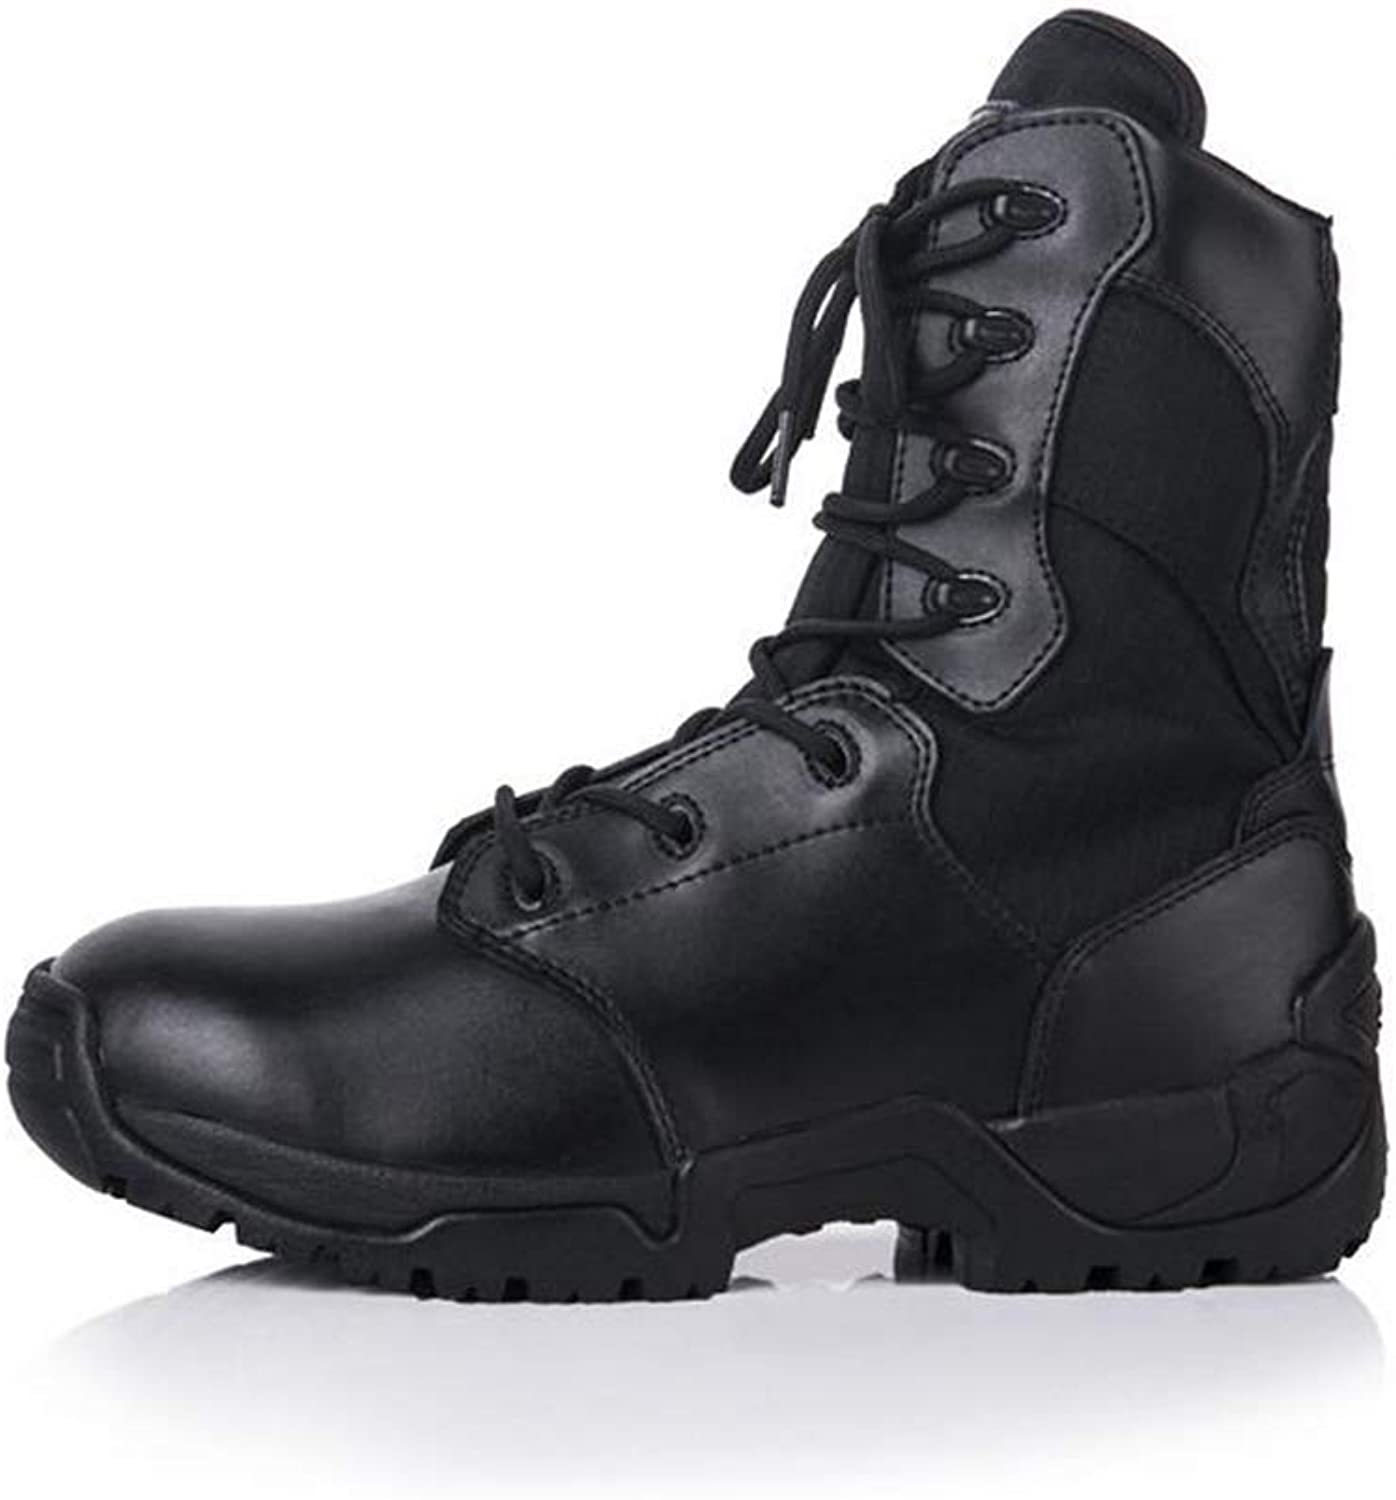 Y-H Mens Women's Casual shoes,leather High-top Outdoor Combat Boots,Comfort Breathable Climbing Sneakers,Tooling Boots,Military Boots (color   Black, Size   45)